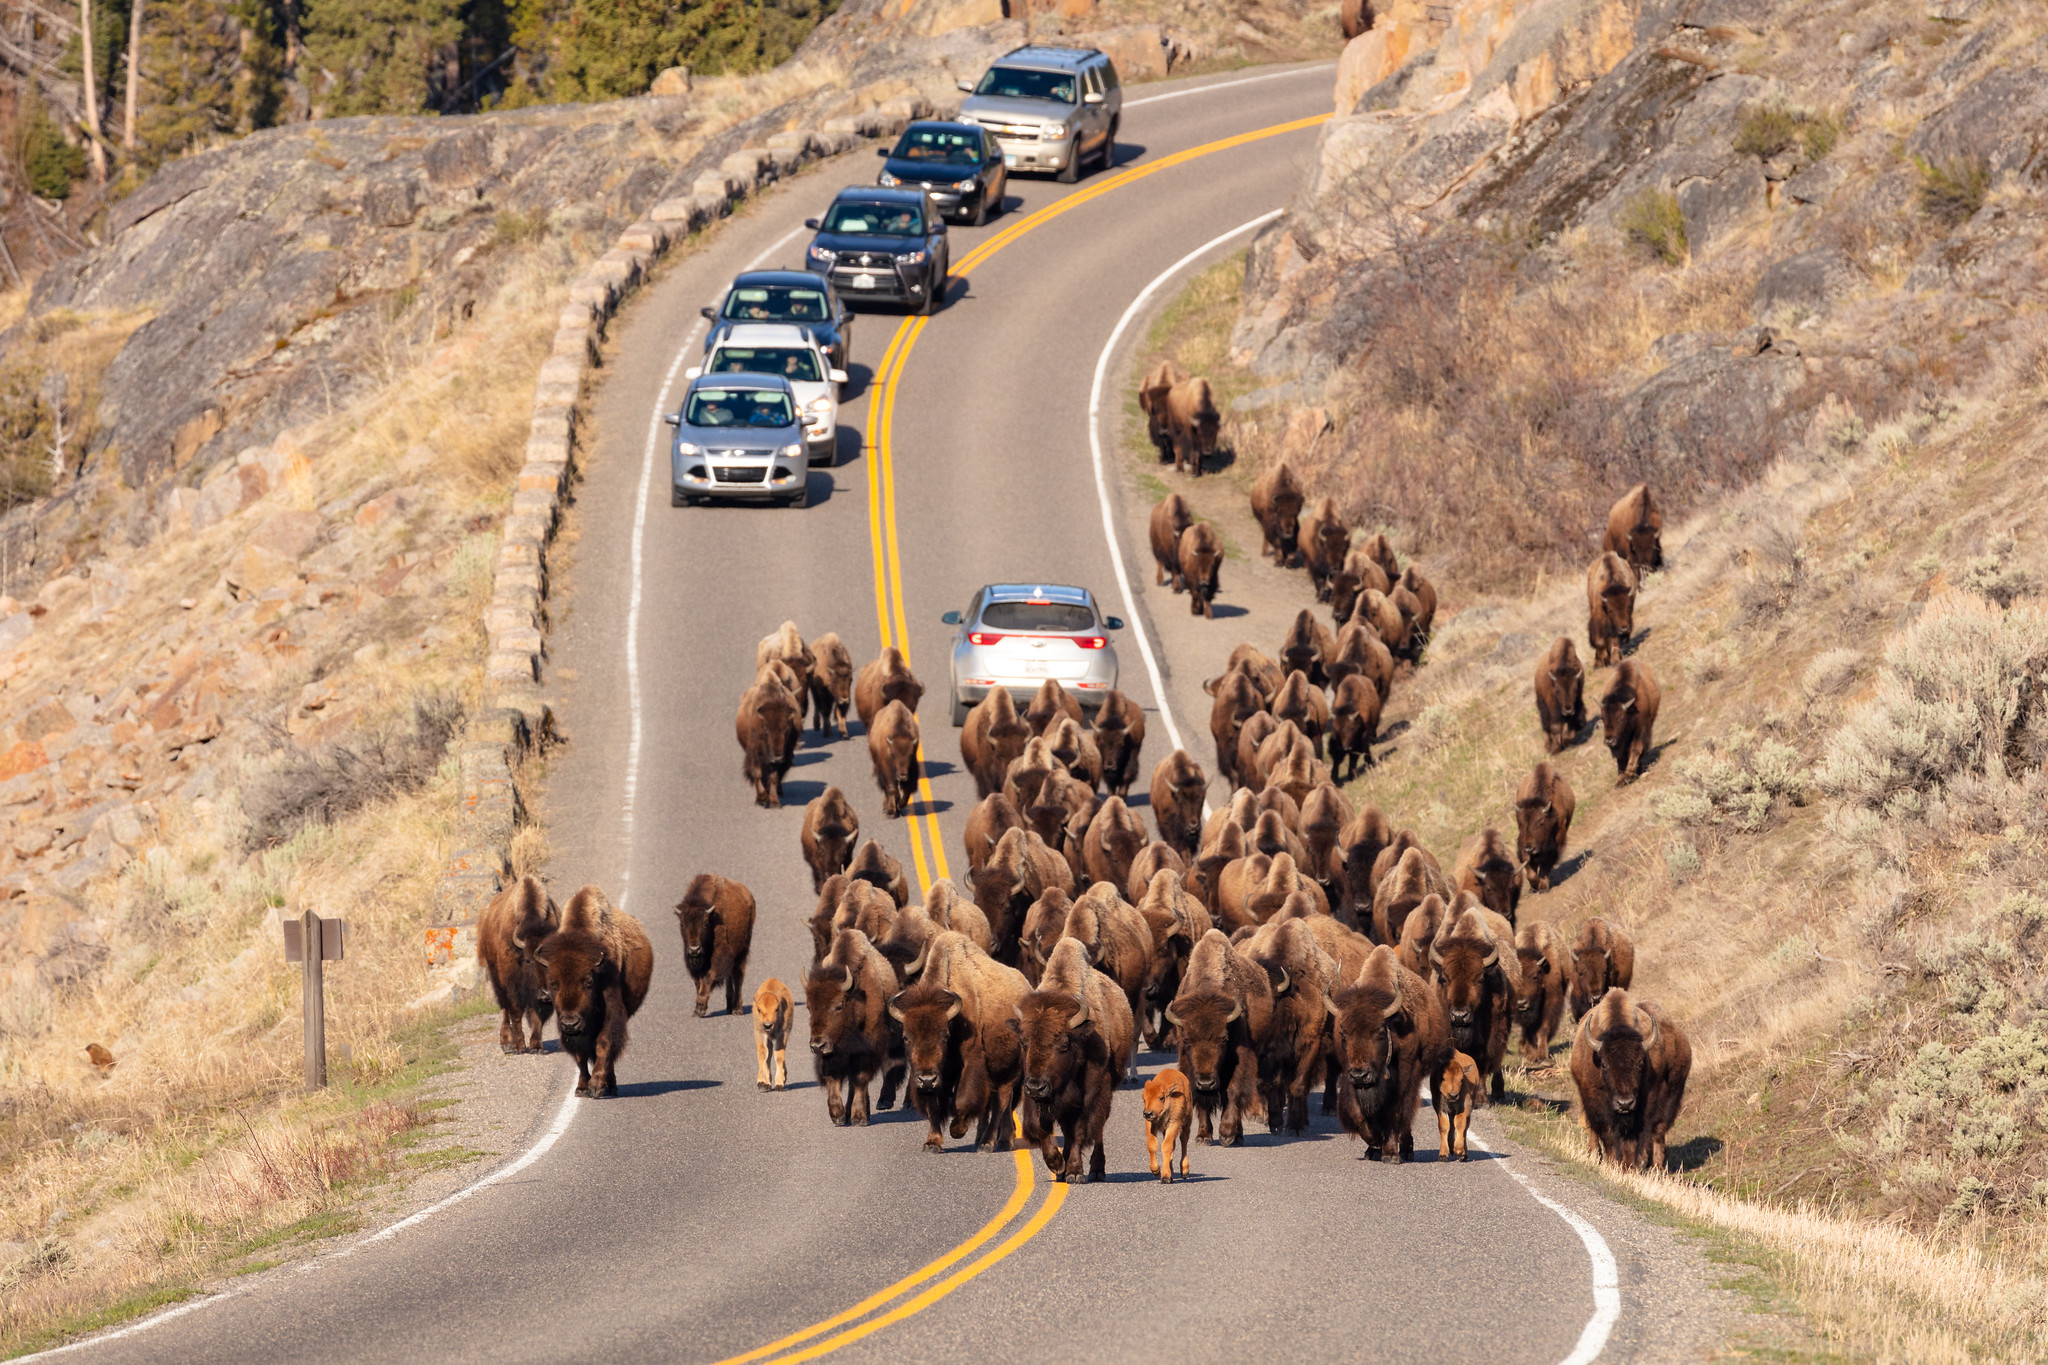 A group of bison walk along the road towards Lamar Valley with cars following behind them